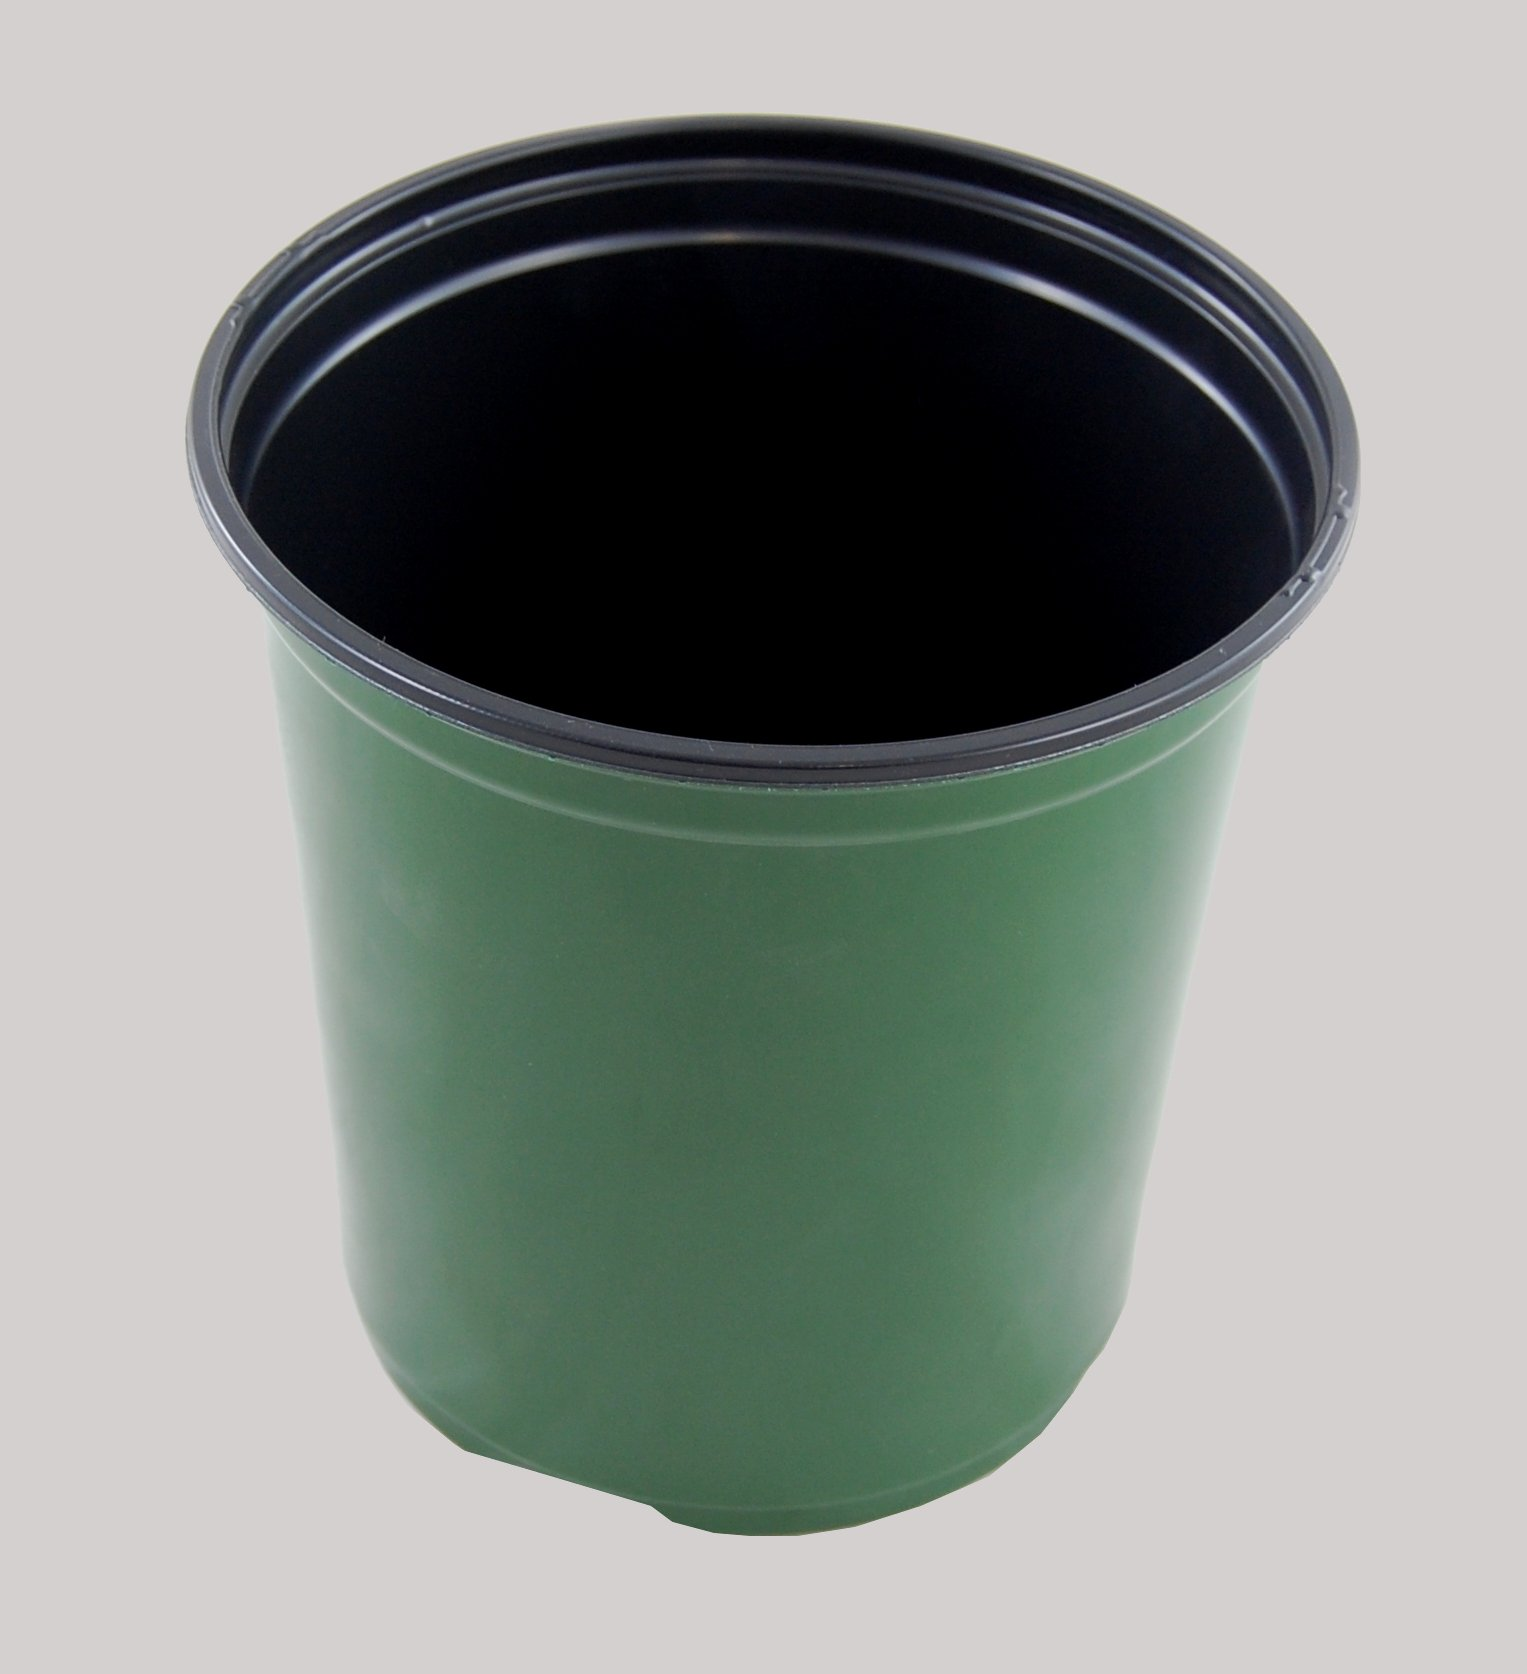 Plastic Nursery 1 Gallon - Plant Flower Pot - Green - 270 Pots By Growers Solution by East Jordon